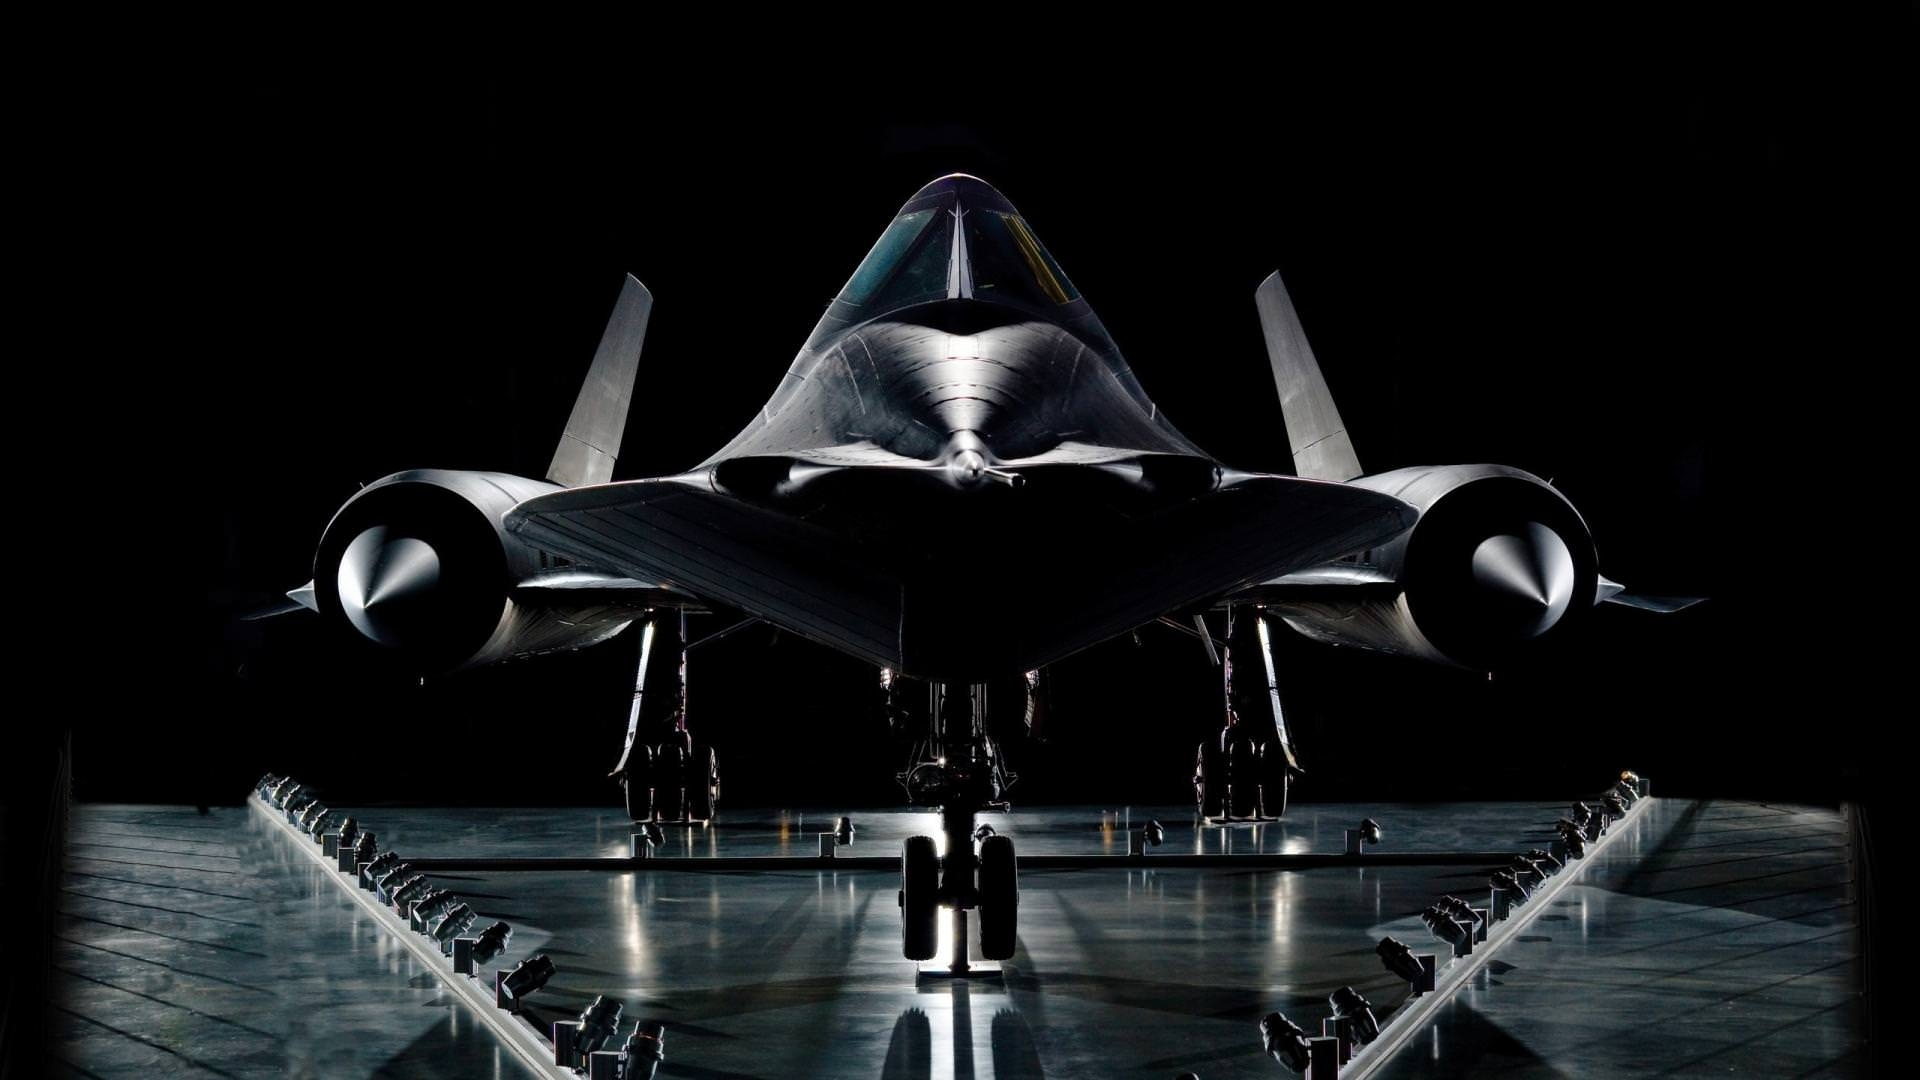 Sr 71 Blackbird Wallpaper